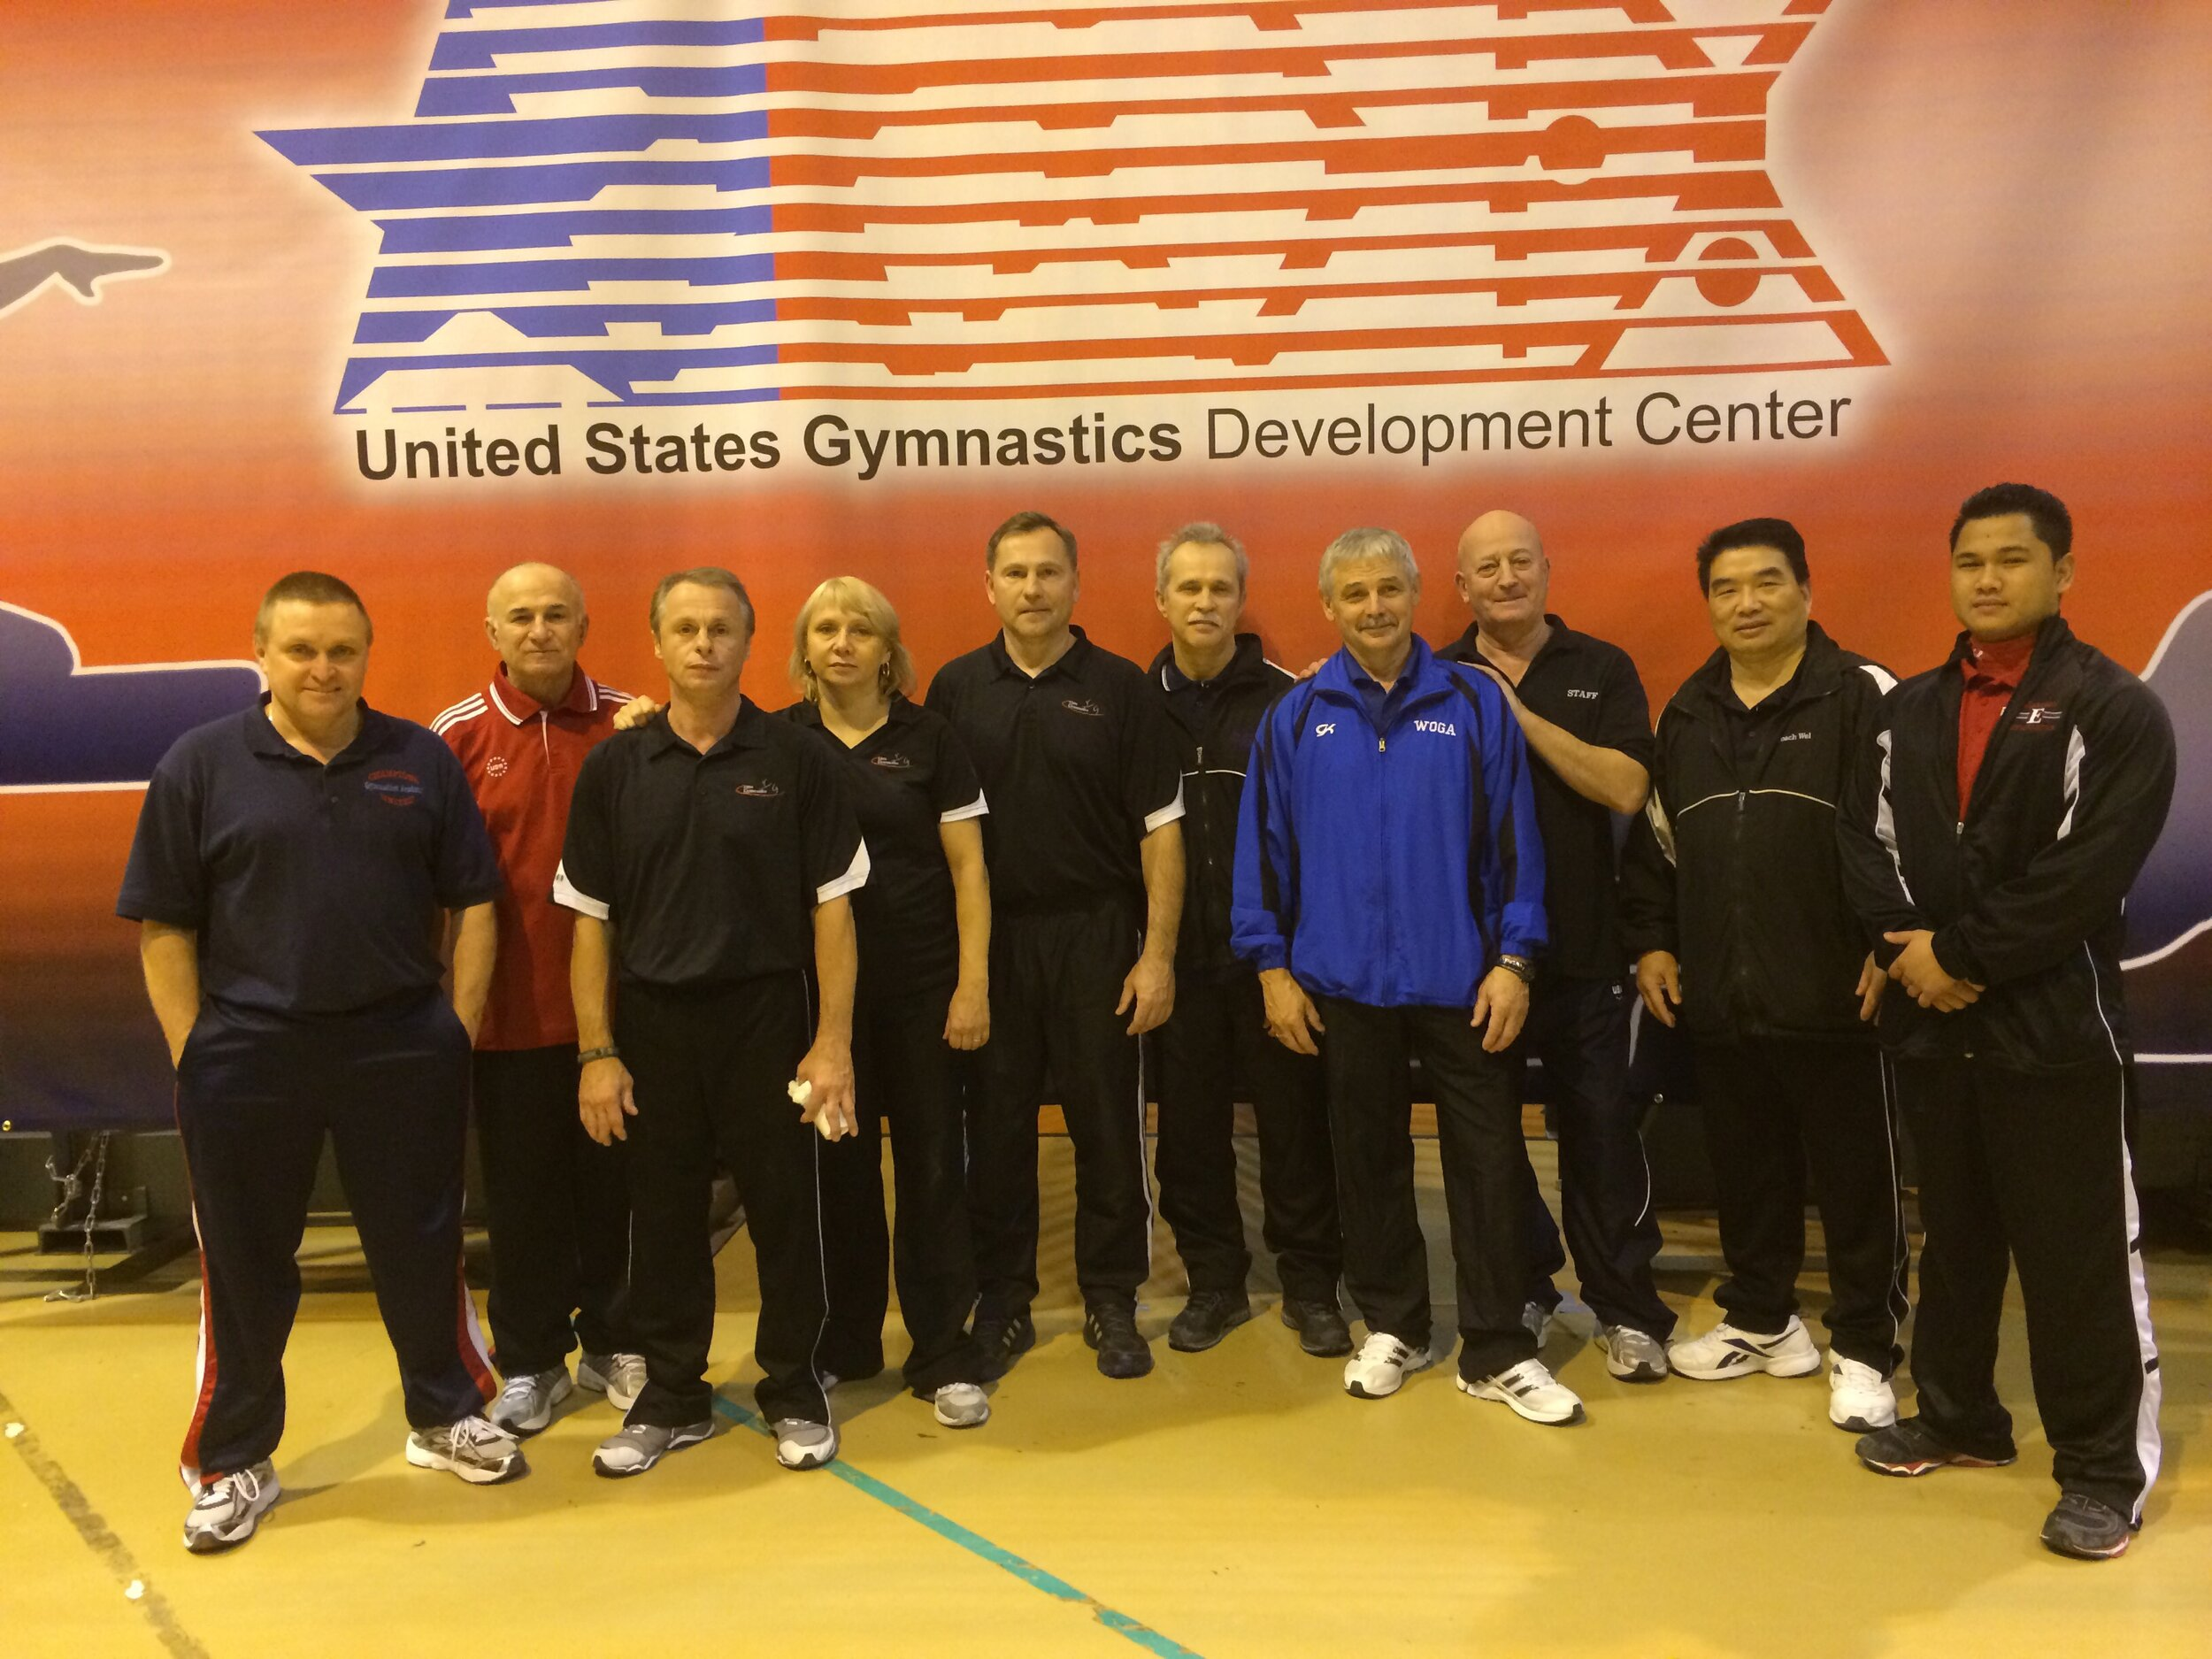 SOME OF THE ATTENDING GNYI COACHES